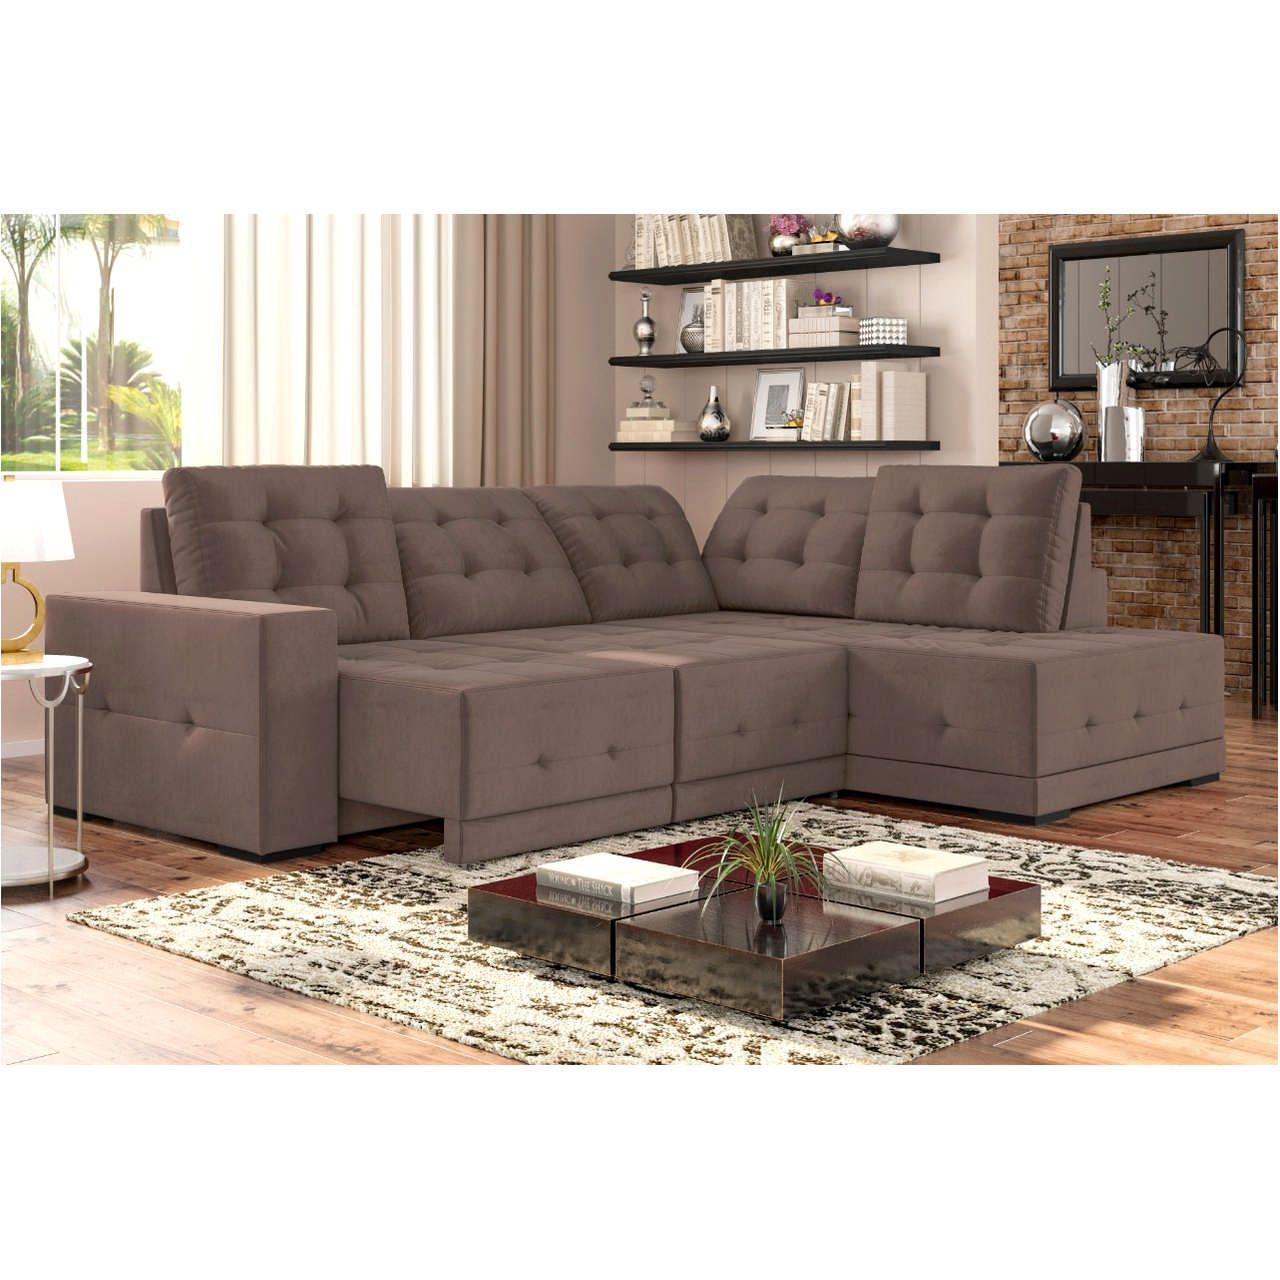 Sofá Sttilo Canto 6 Lugares 285 x 205 cm Chaise D Suede ...